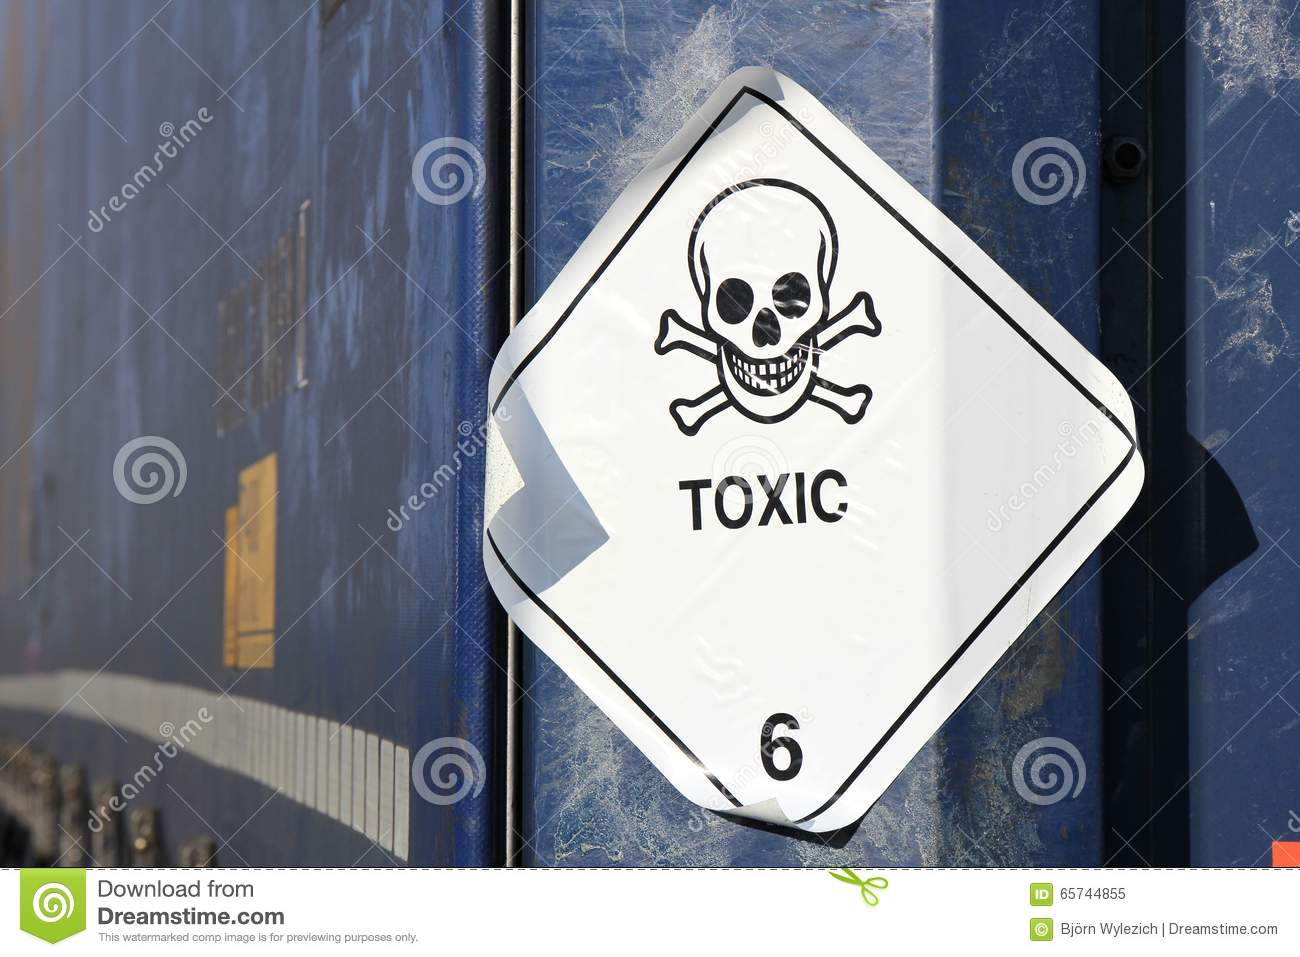 Toxic substances